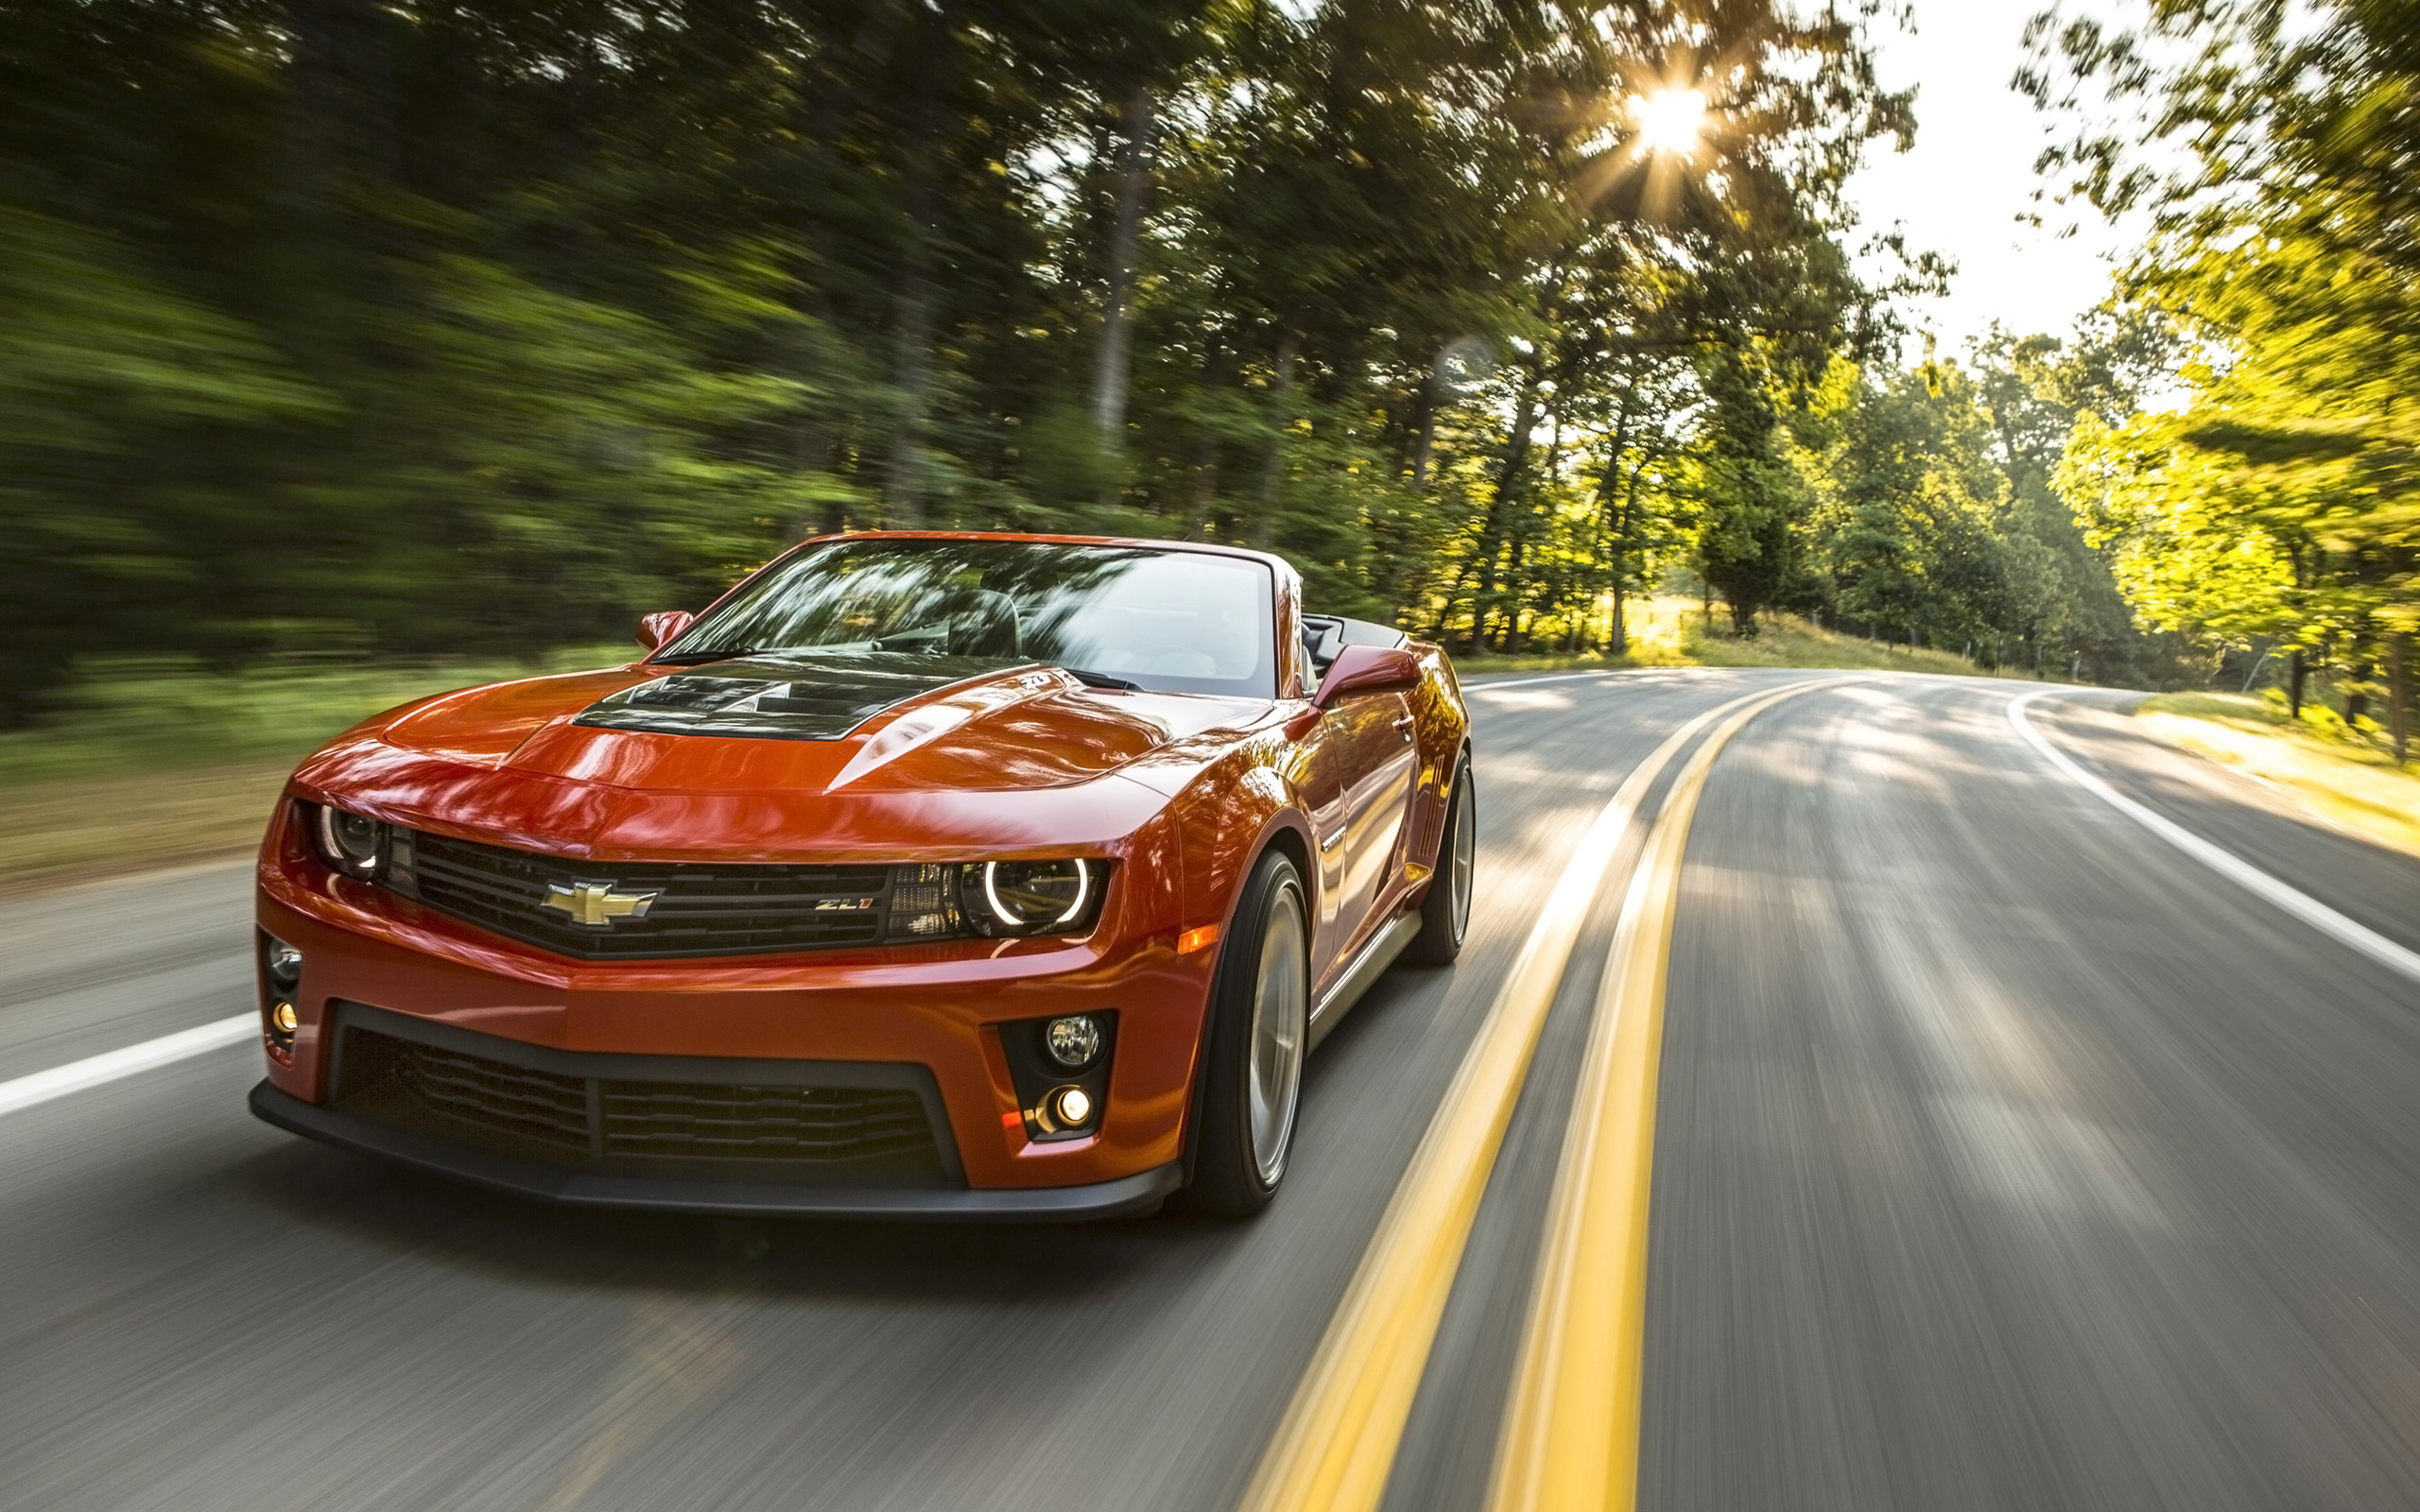 Zl1 Wallpaper Related Keywords Suggestions   Zl1 Wallpaper Long Tail 2560x1600